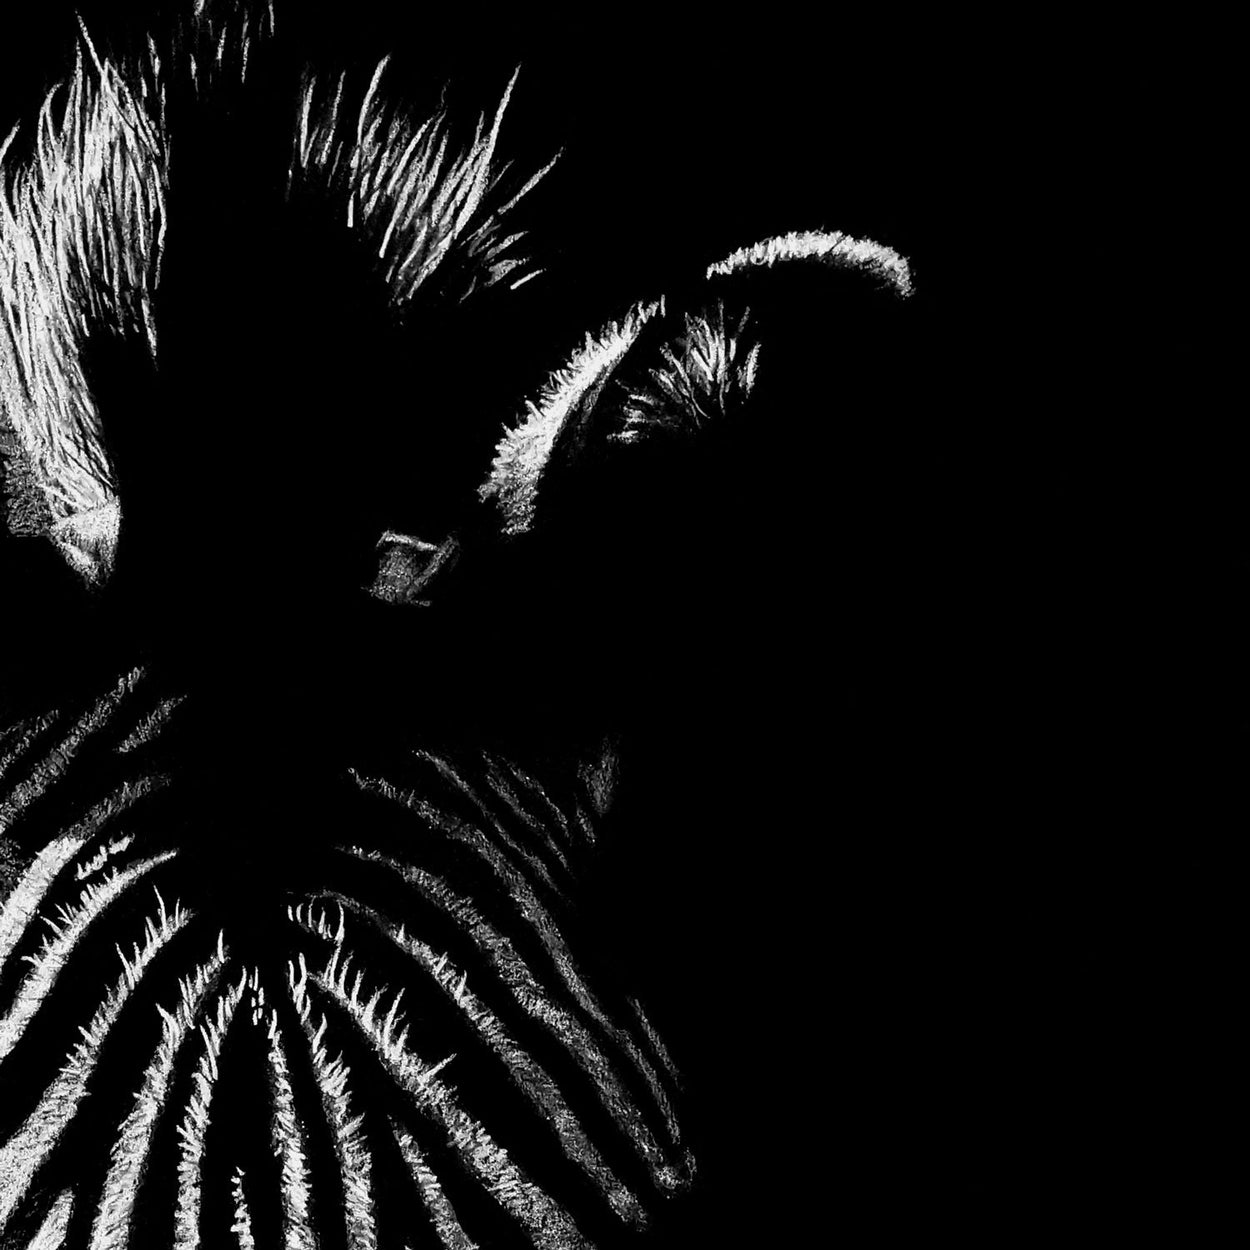 Zebra drawing close-up - The Thriving Wild